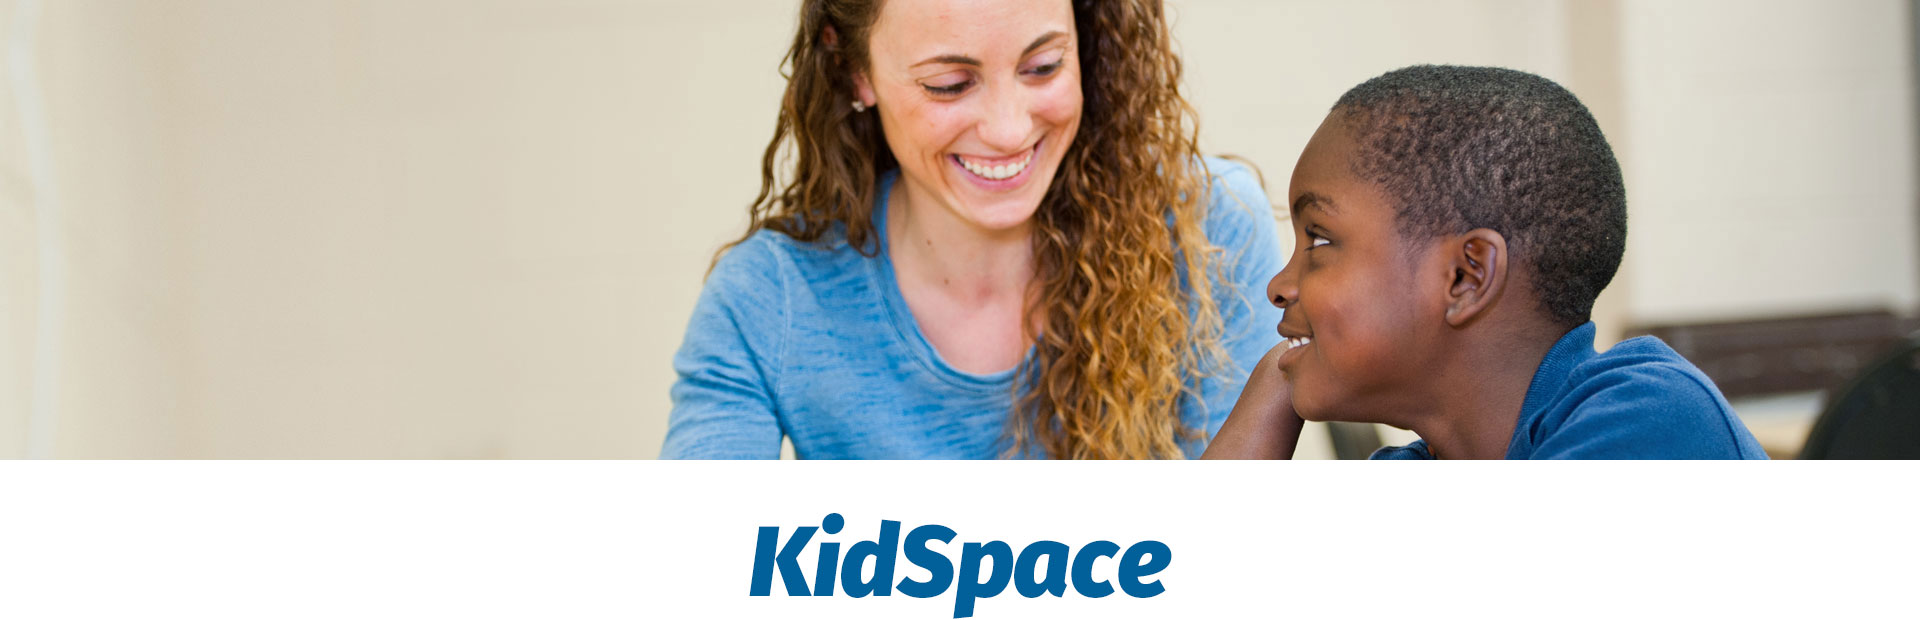 kleinlife kidspace, after school program, kidspace pa